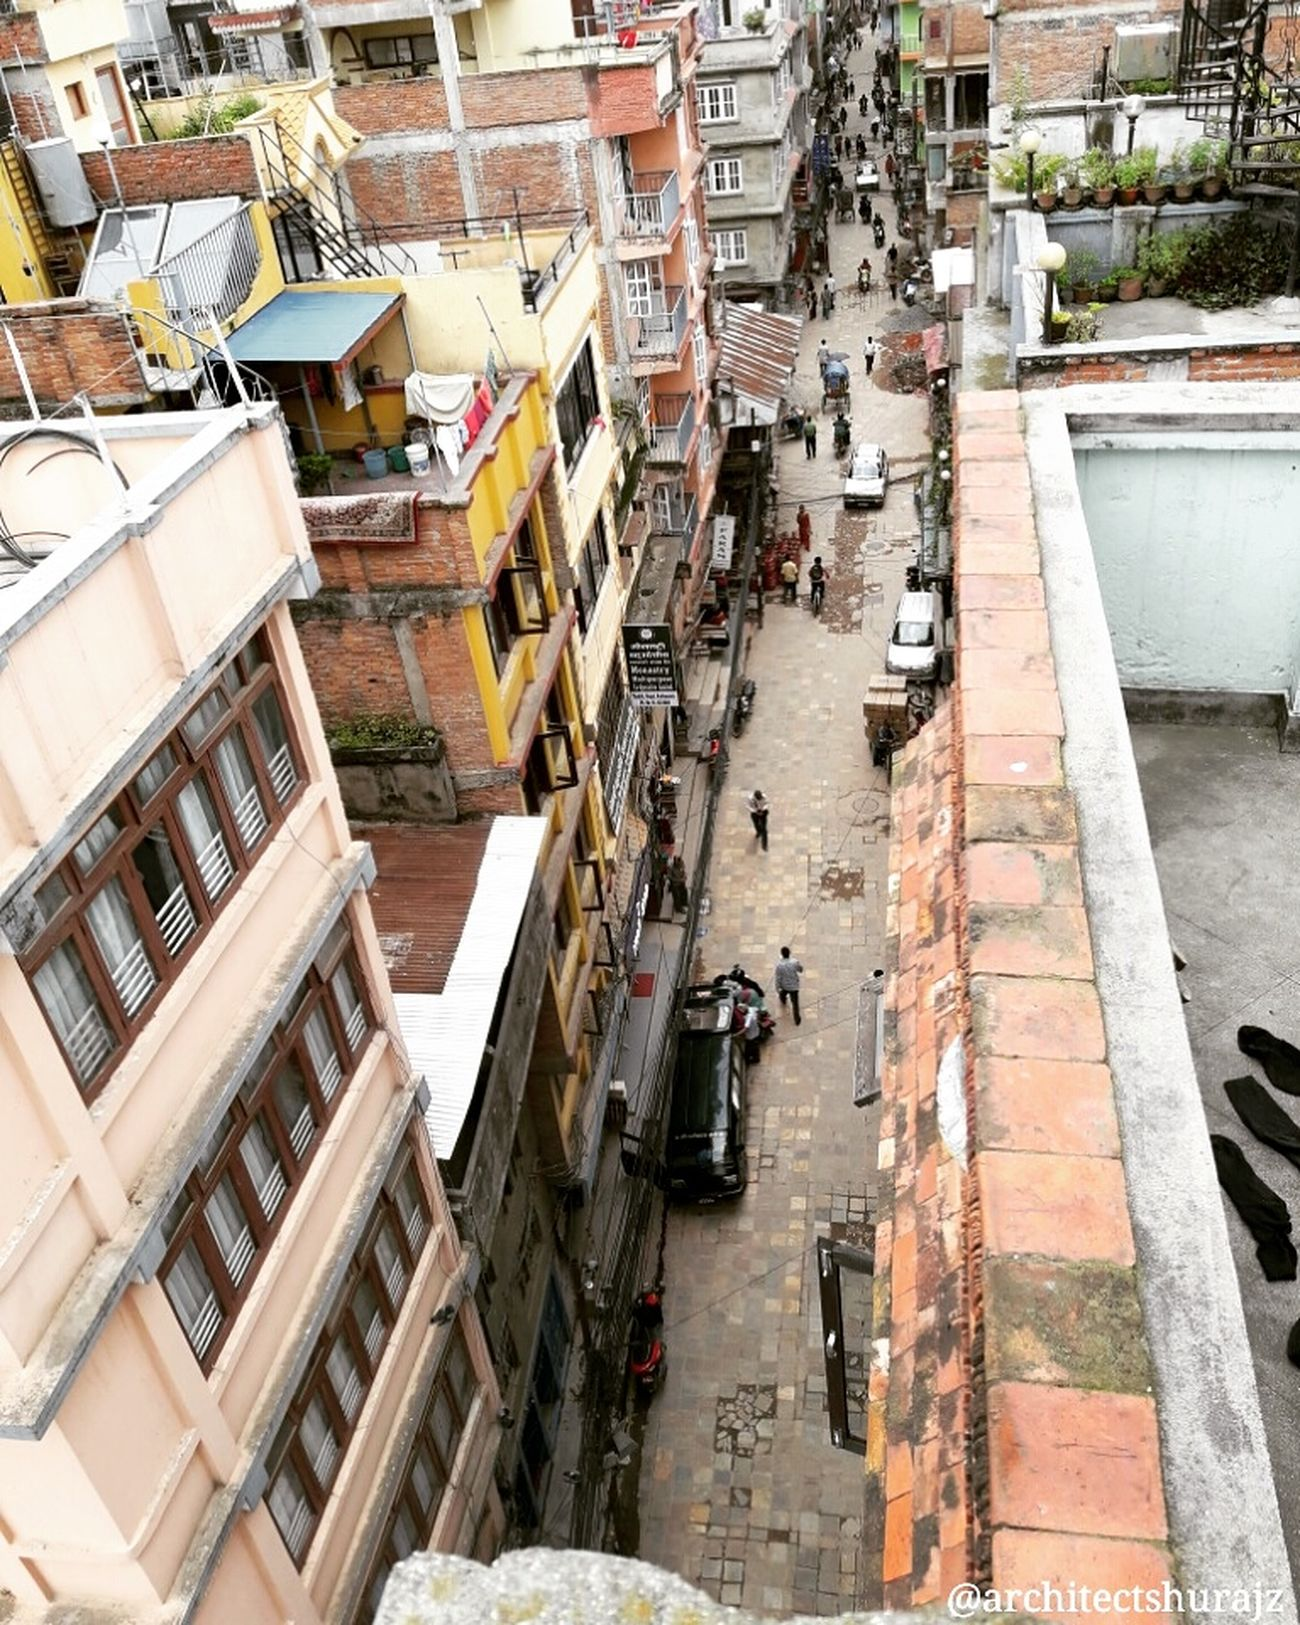 Narrow streets of core kathmandu city was built for pedestrian purpose during Malla period. Now its overhaul with motorbikes, cars and vehicles. MyCity❤️ Showcase August Architecturelovers Urban Landscape Urban Exploration Kathmandu Nepal Kathmandu, Nepal NepalNow Architecturephotography Architecture Travel Archidaily Archilovers Street Photography Architecture - Eye On Detail ARCHITECT Rooftop Pivotal Ideas A Bird's Eye View Embrace Urban Life Flying High